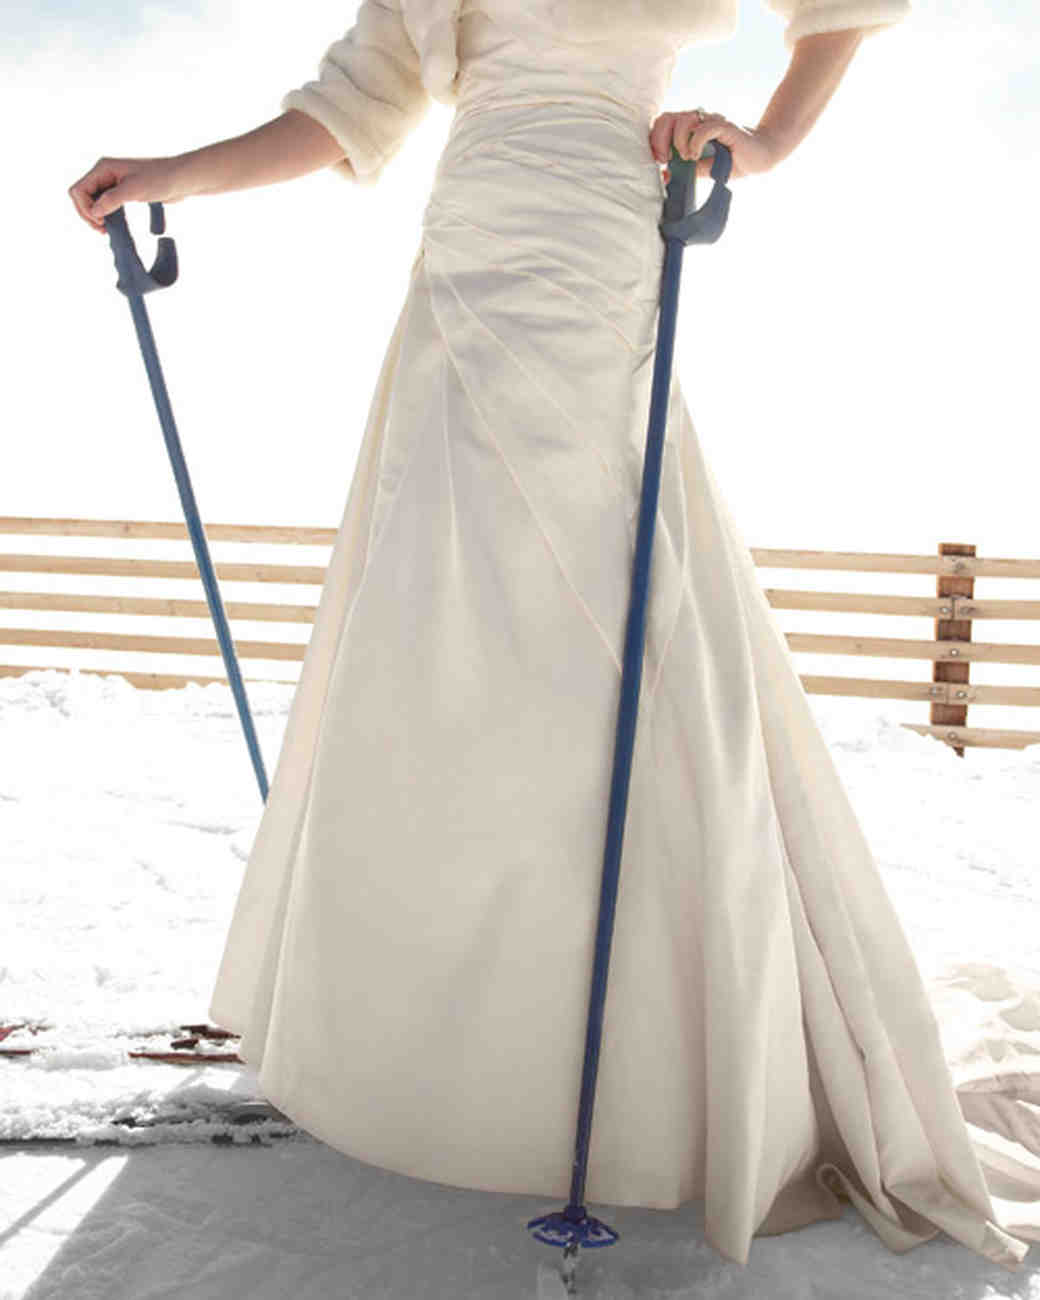 bride on skis